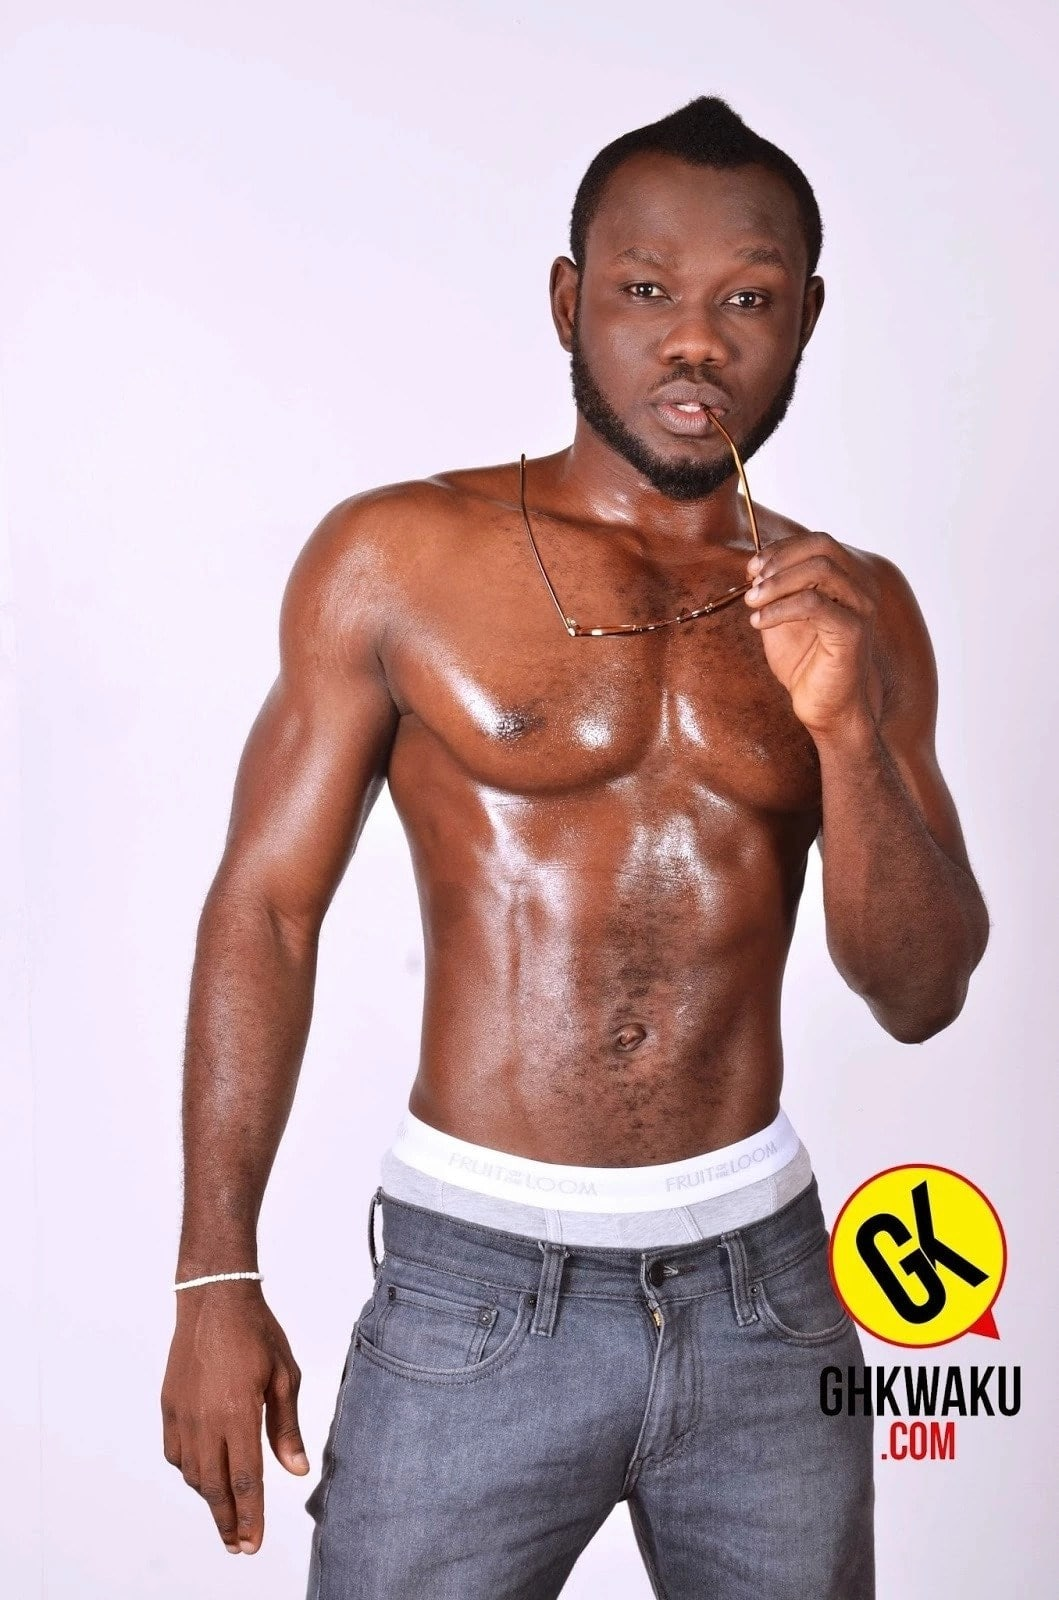 Photos of Ghanaian celebrities with six-packs